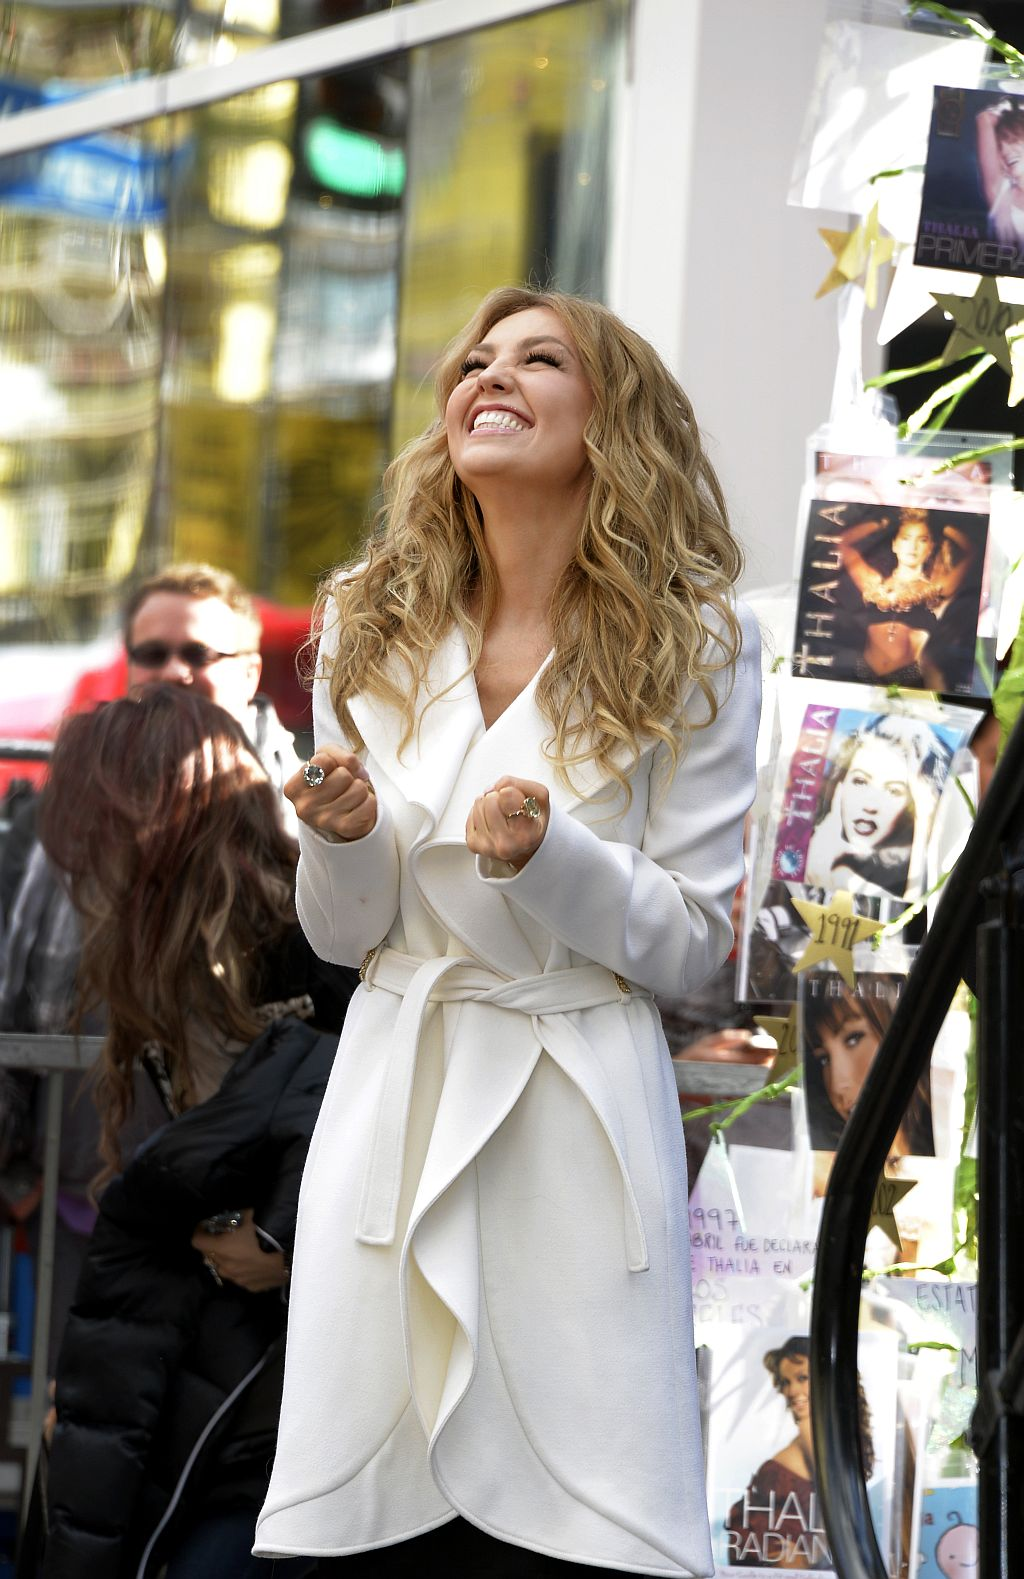 Thalia receives star on Hollywood Walk of Fame